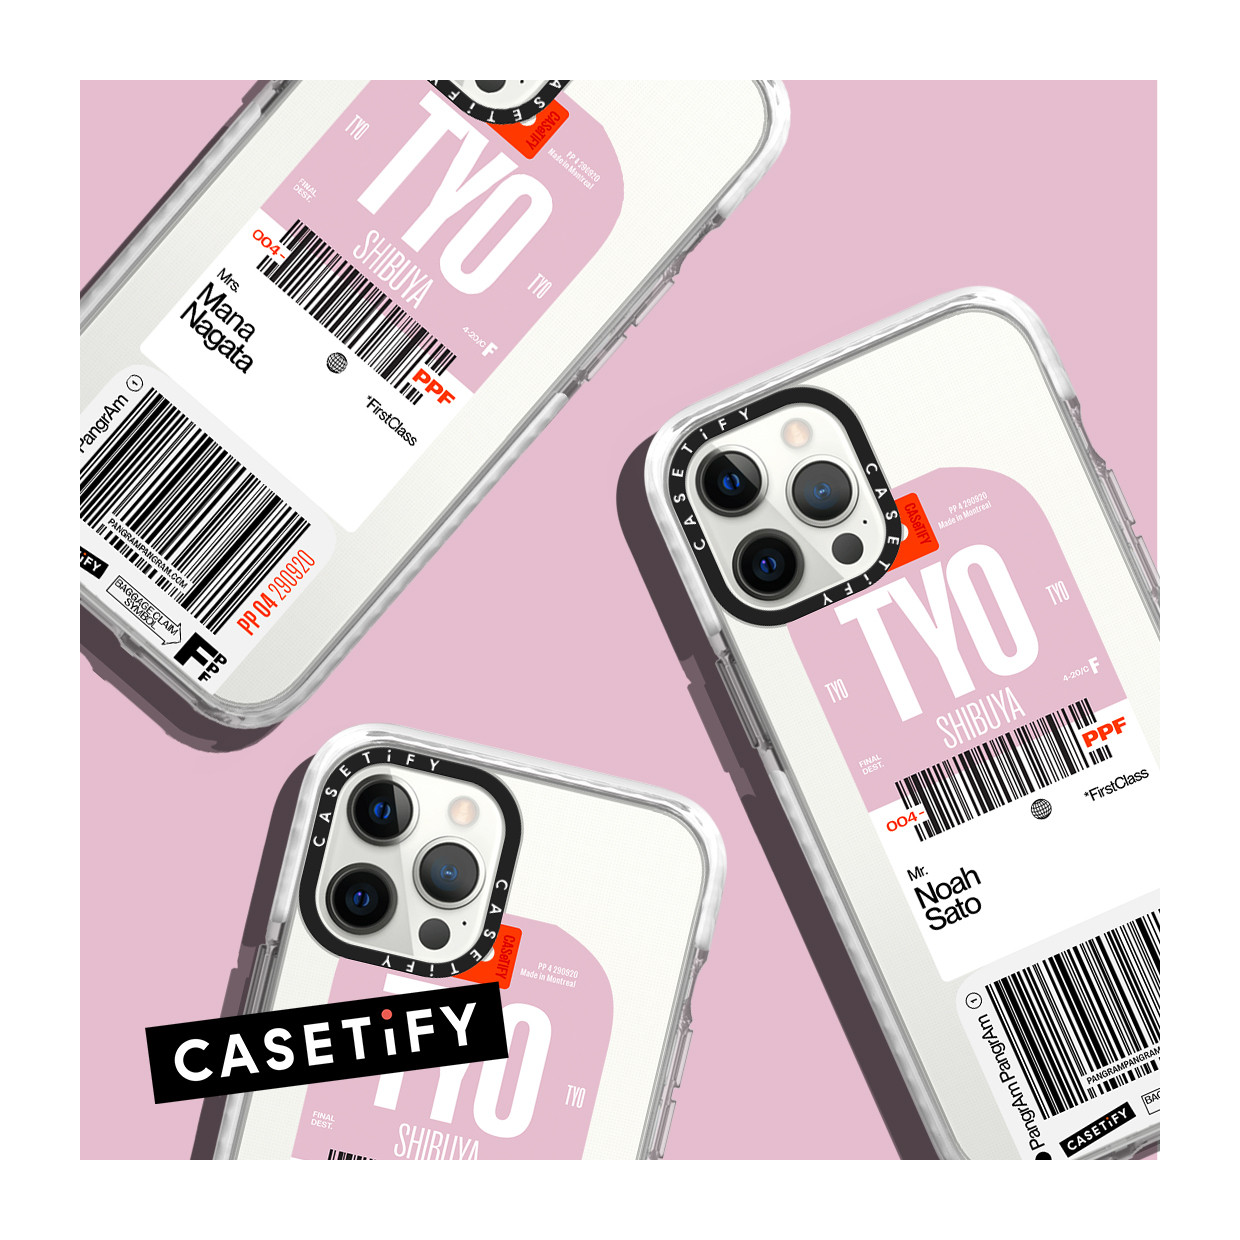 CASETiFY POP UP STORE